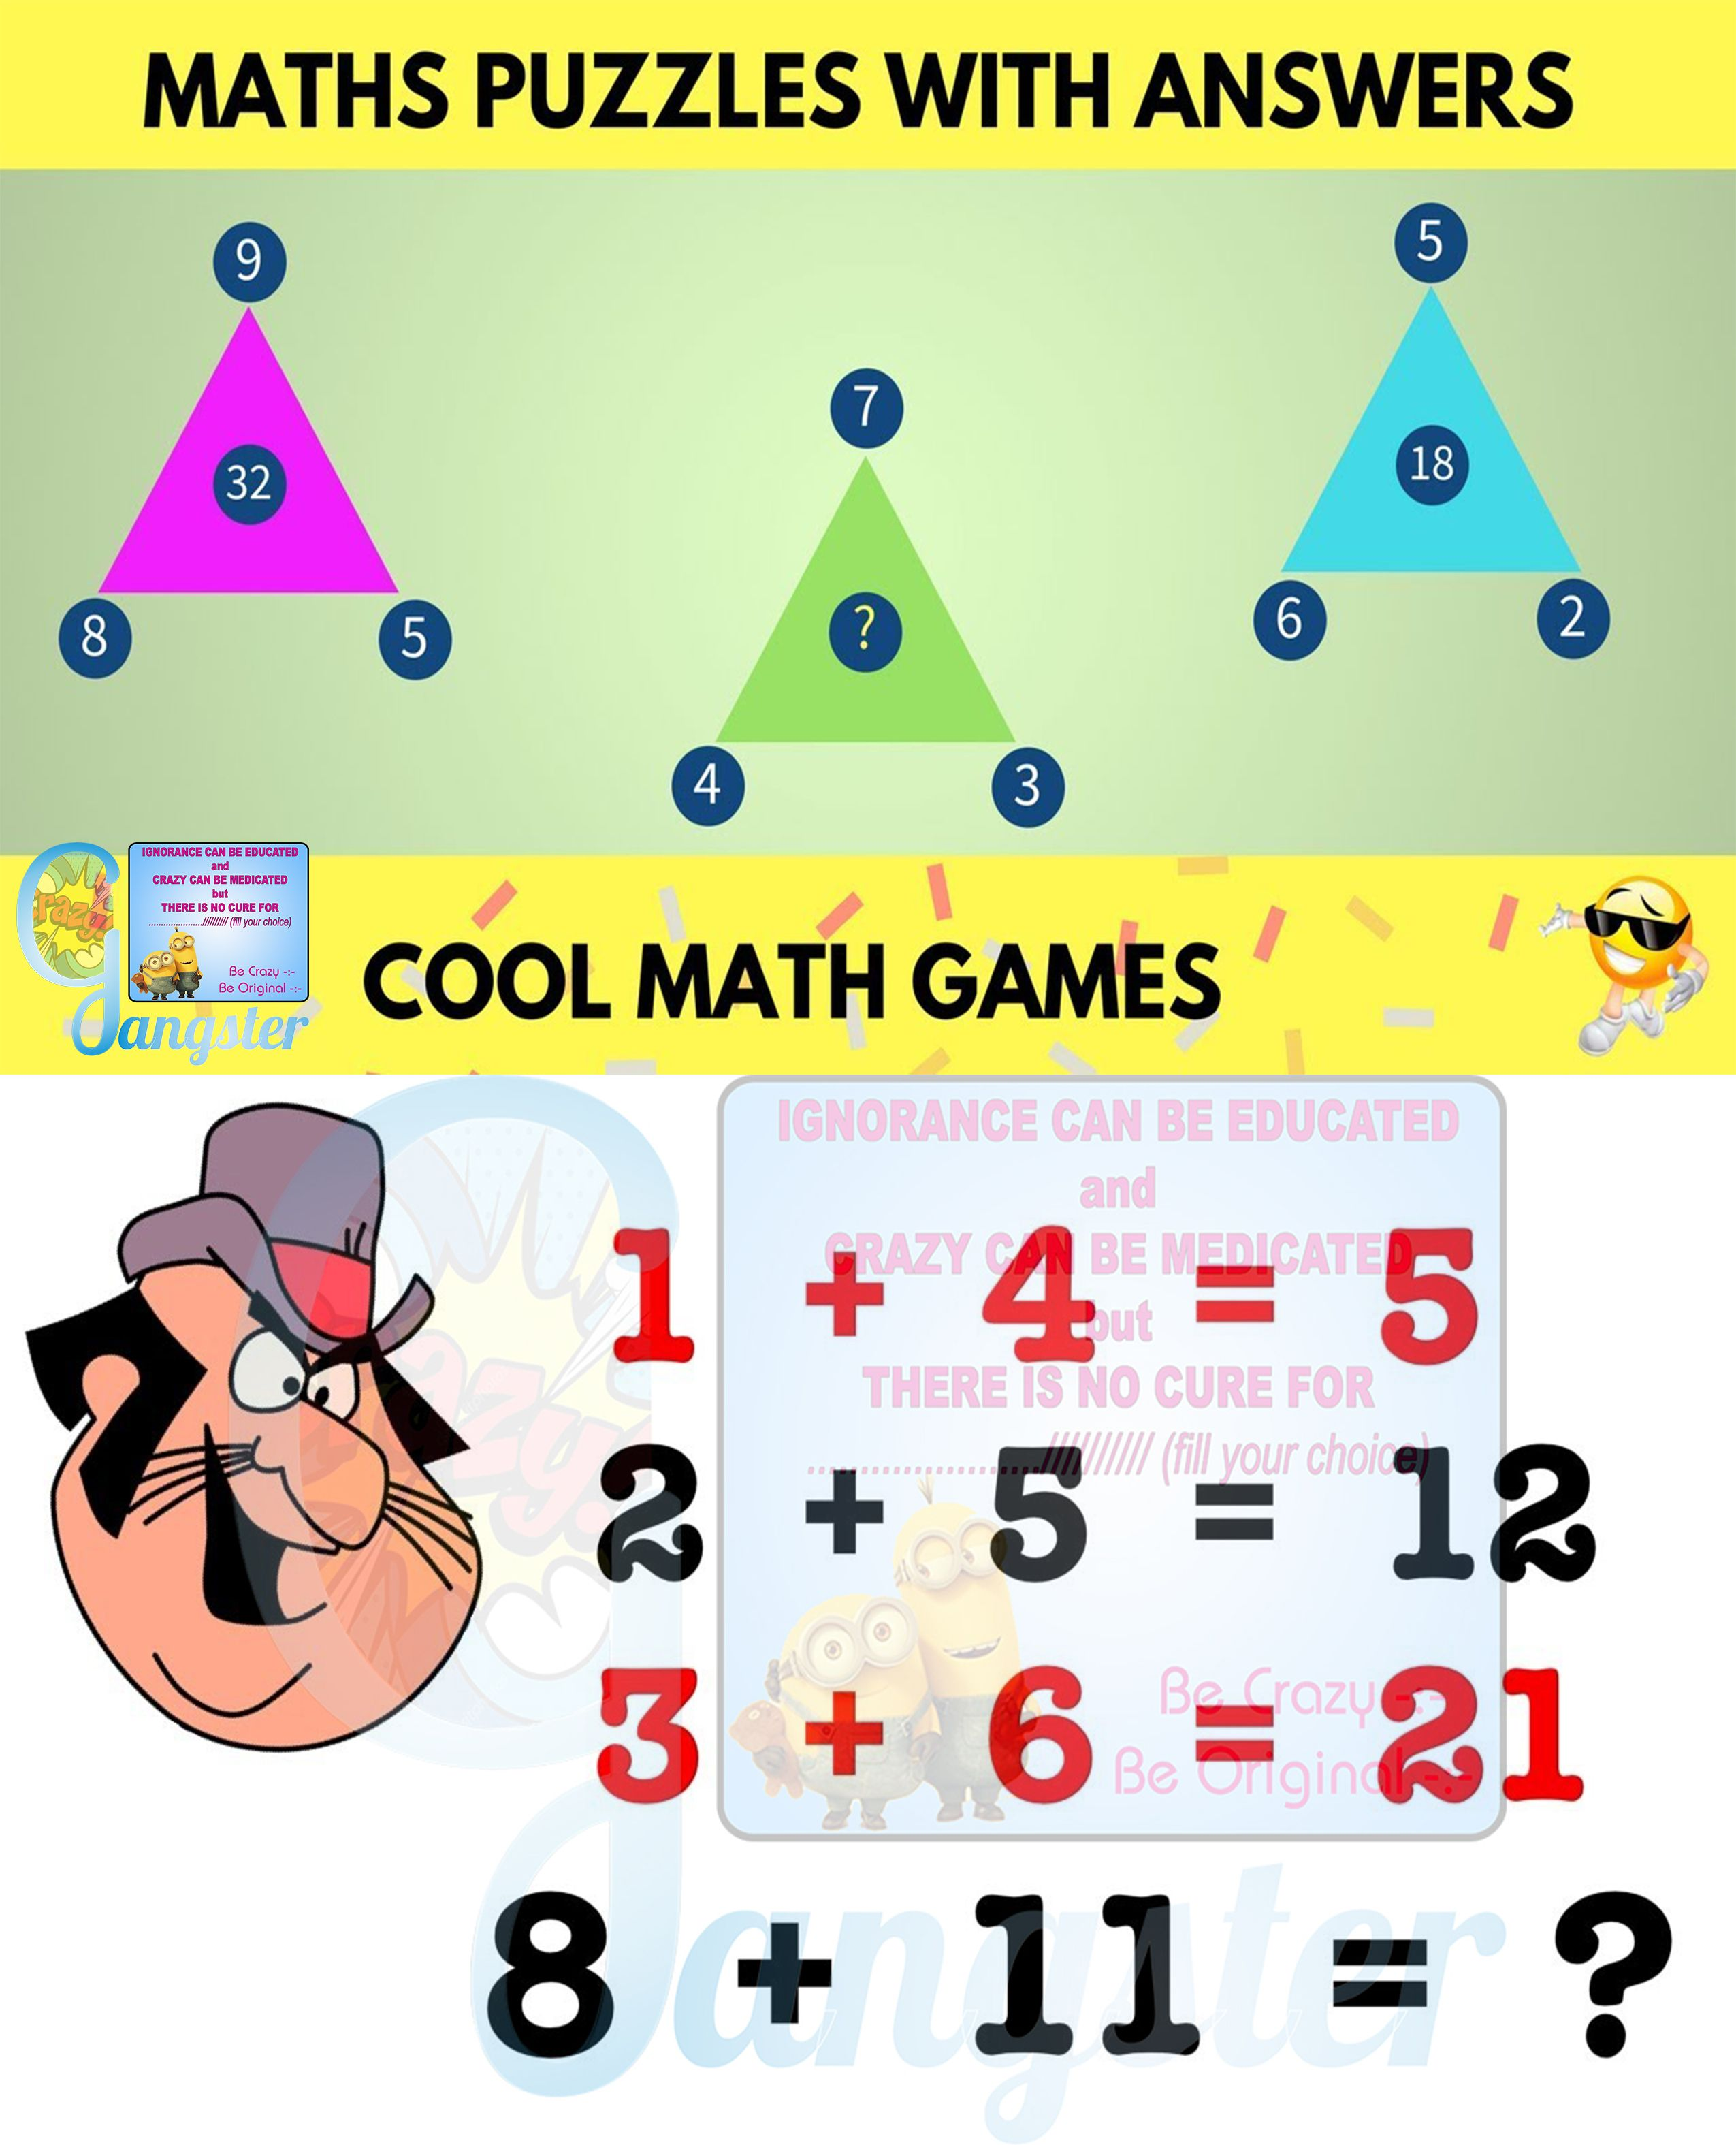 #Puzzles #Mathematics These easy math puzzles with answers ...